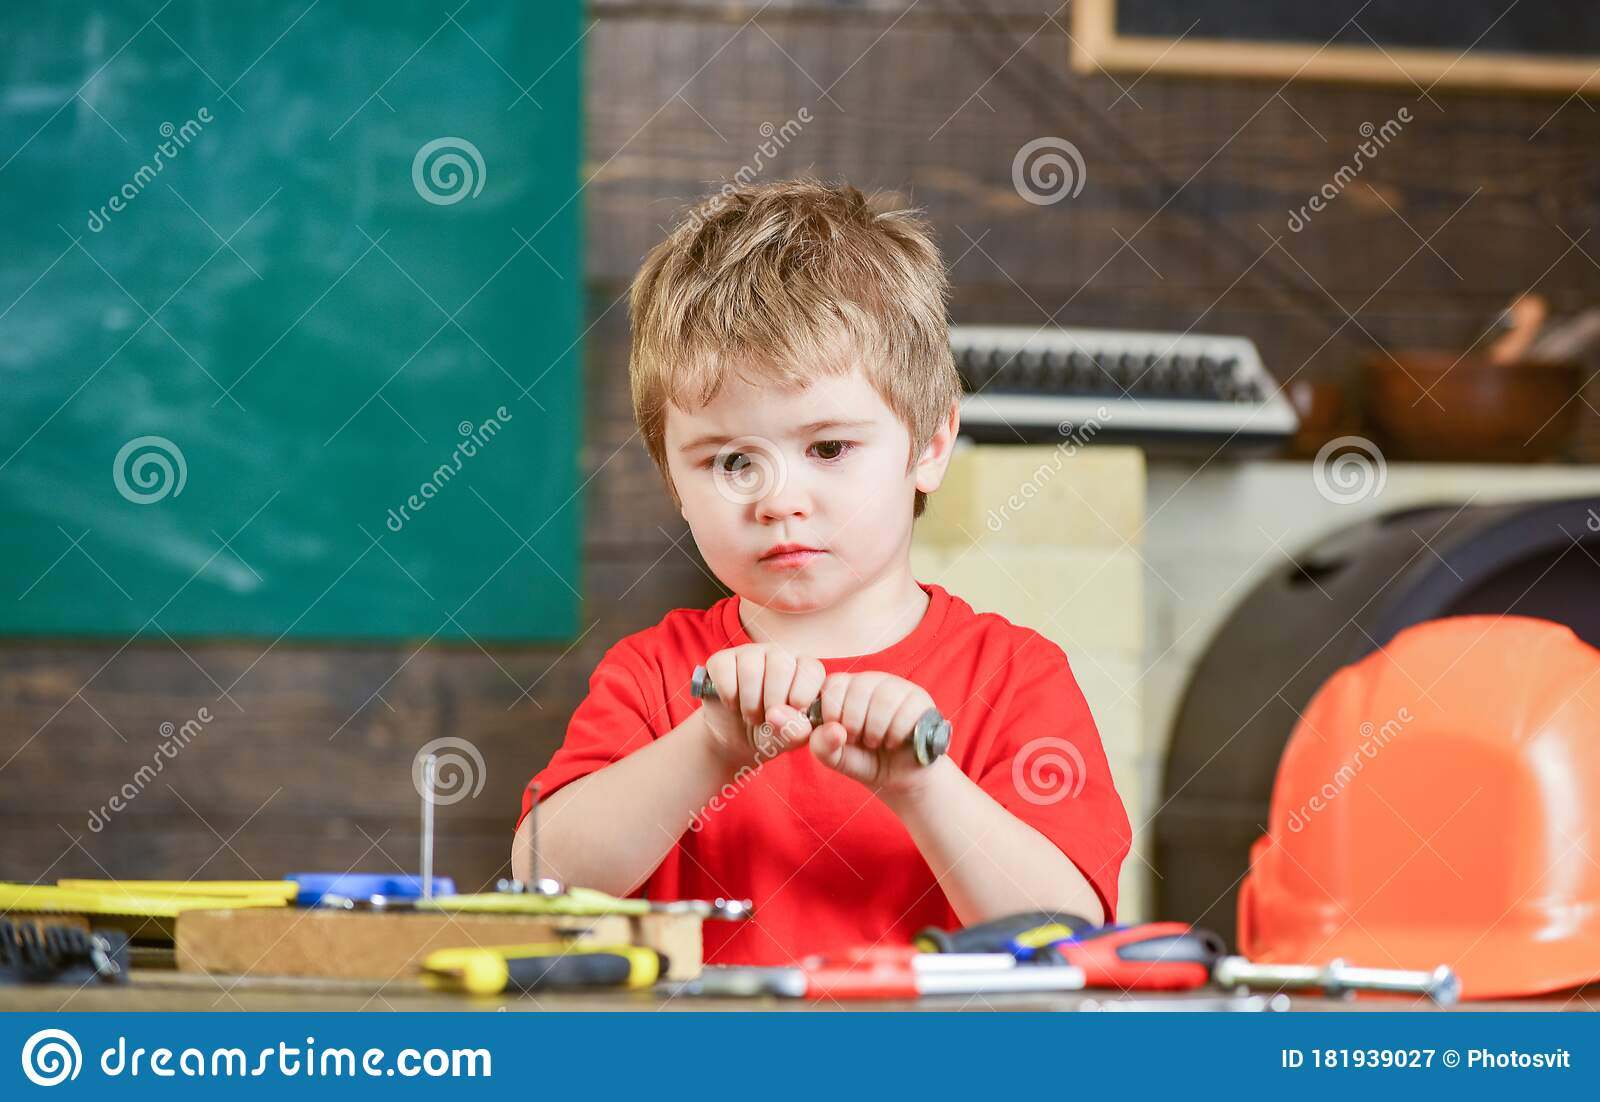 Kid Playing With Long Metal Bolt Concentrated Boy Exploring New Stuff Child In Workshop Stock Image Image Of Carpenter Future 181939027